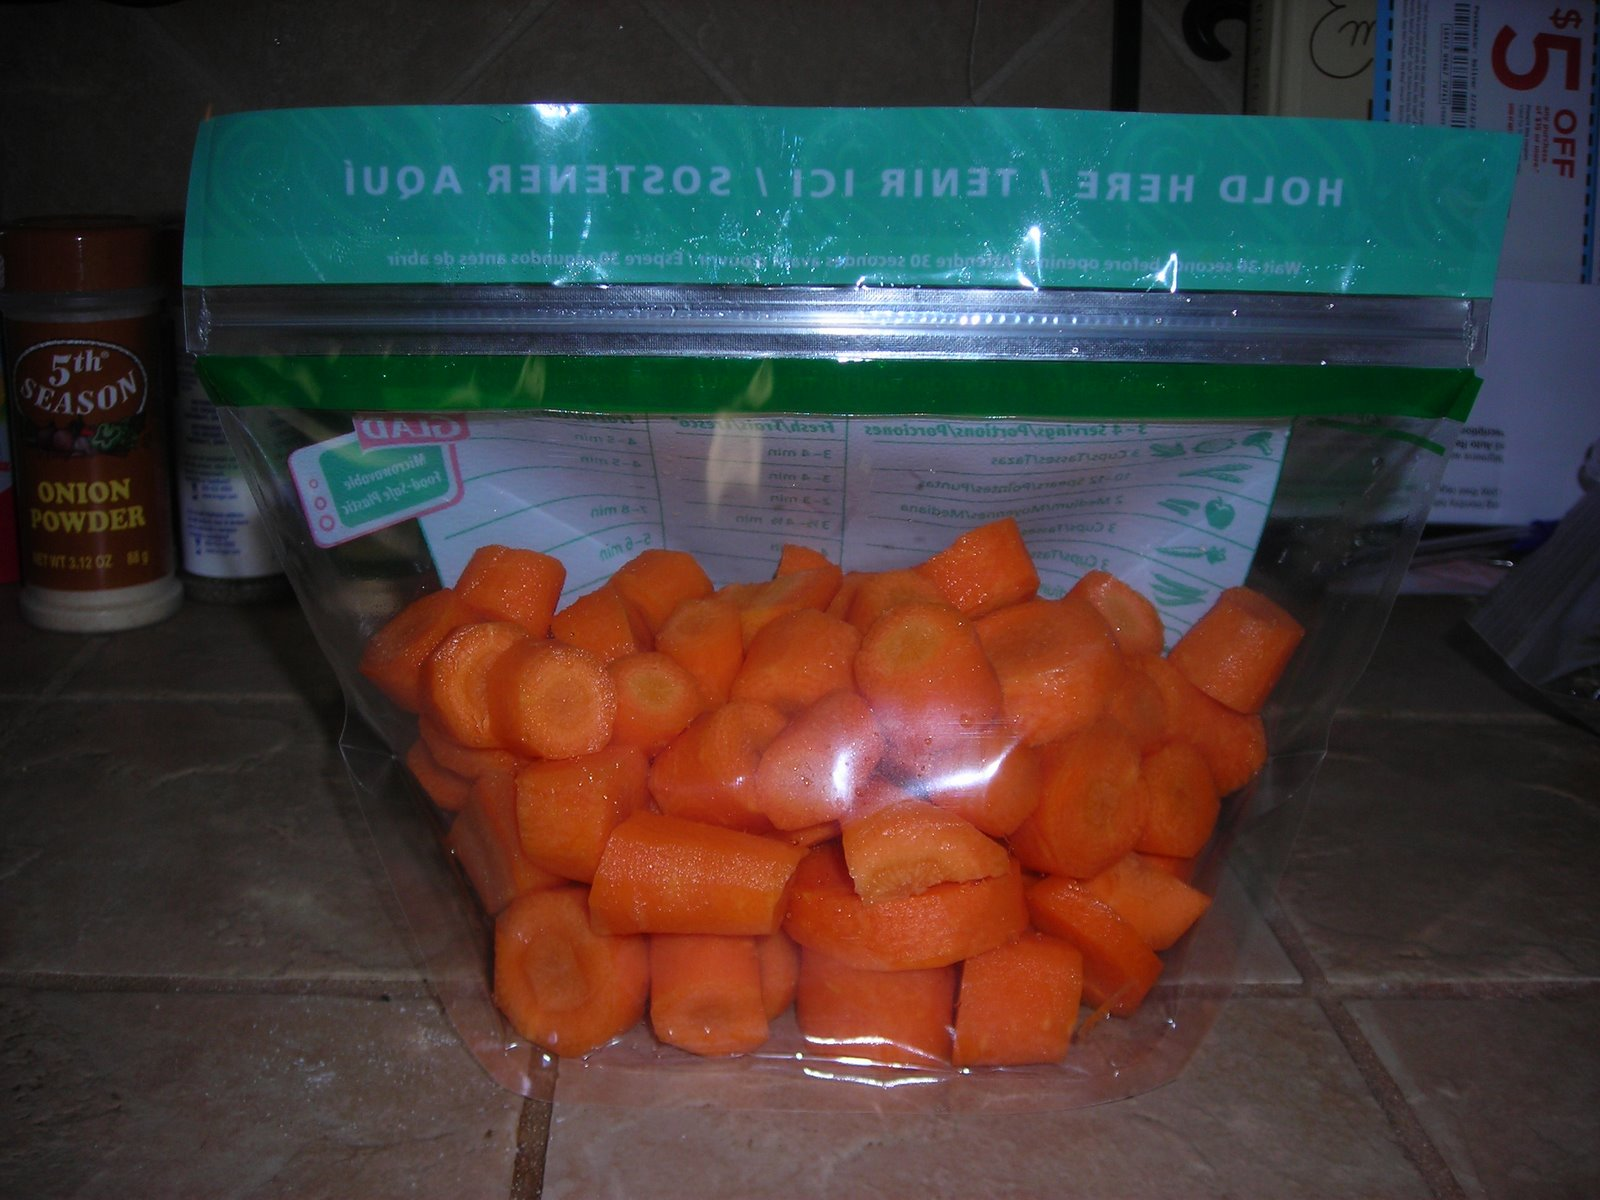 Prepated carrots for microwave steaming